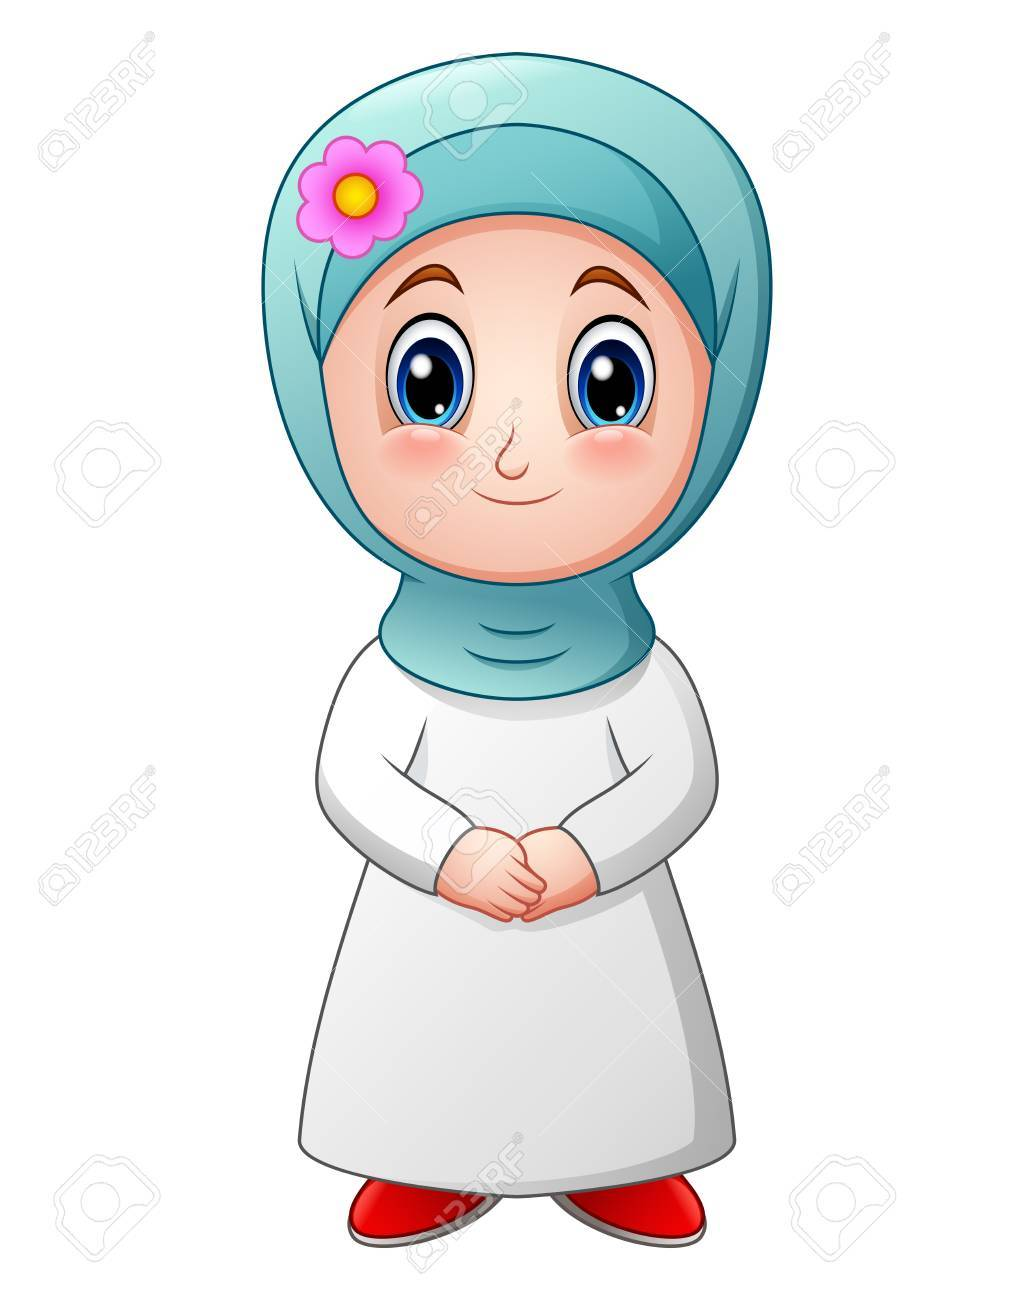 Muslim Cartoon Girl